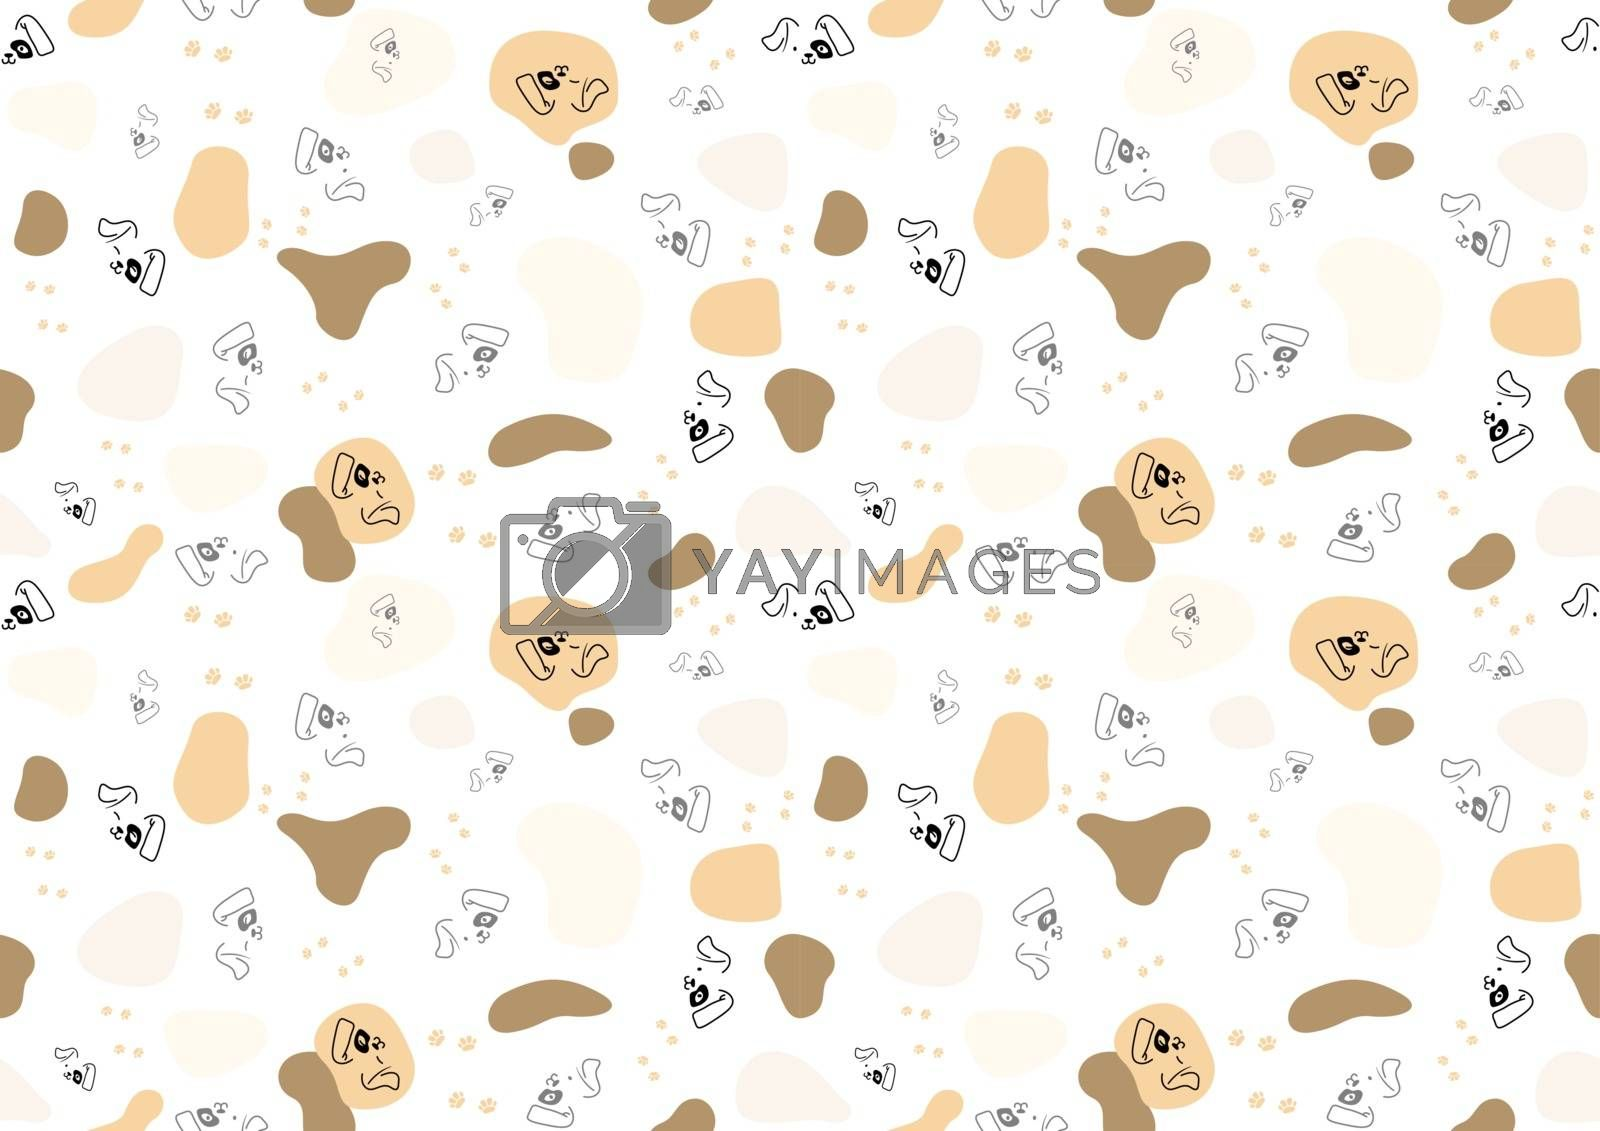 Seamless Baby Pattern with Dog Face and Spots - Repetitive Print Texture Illustration, Vector